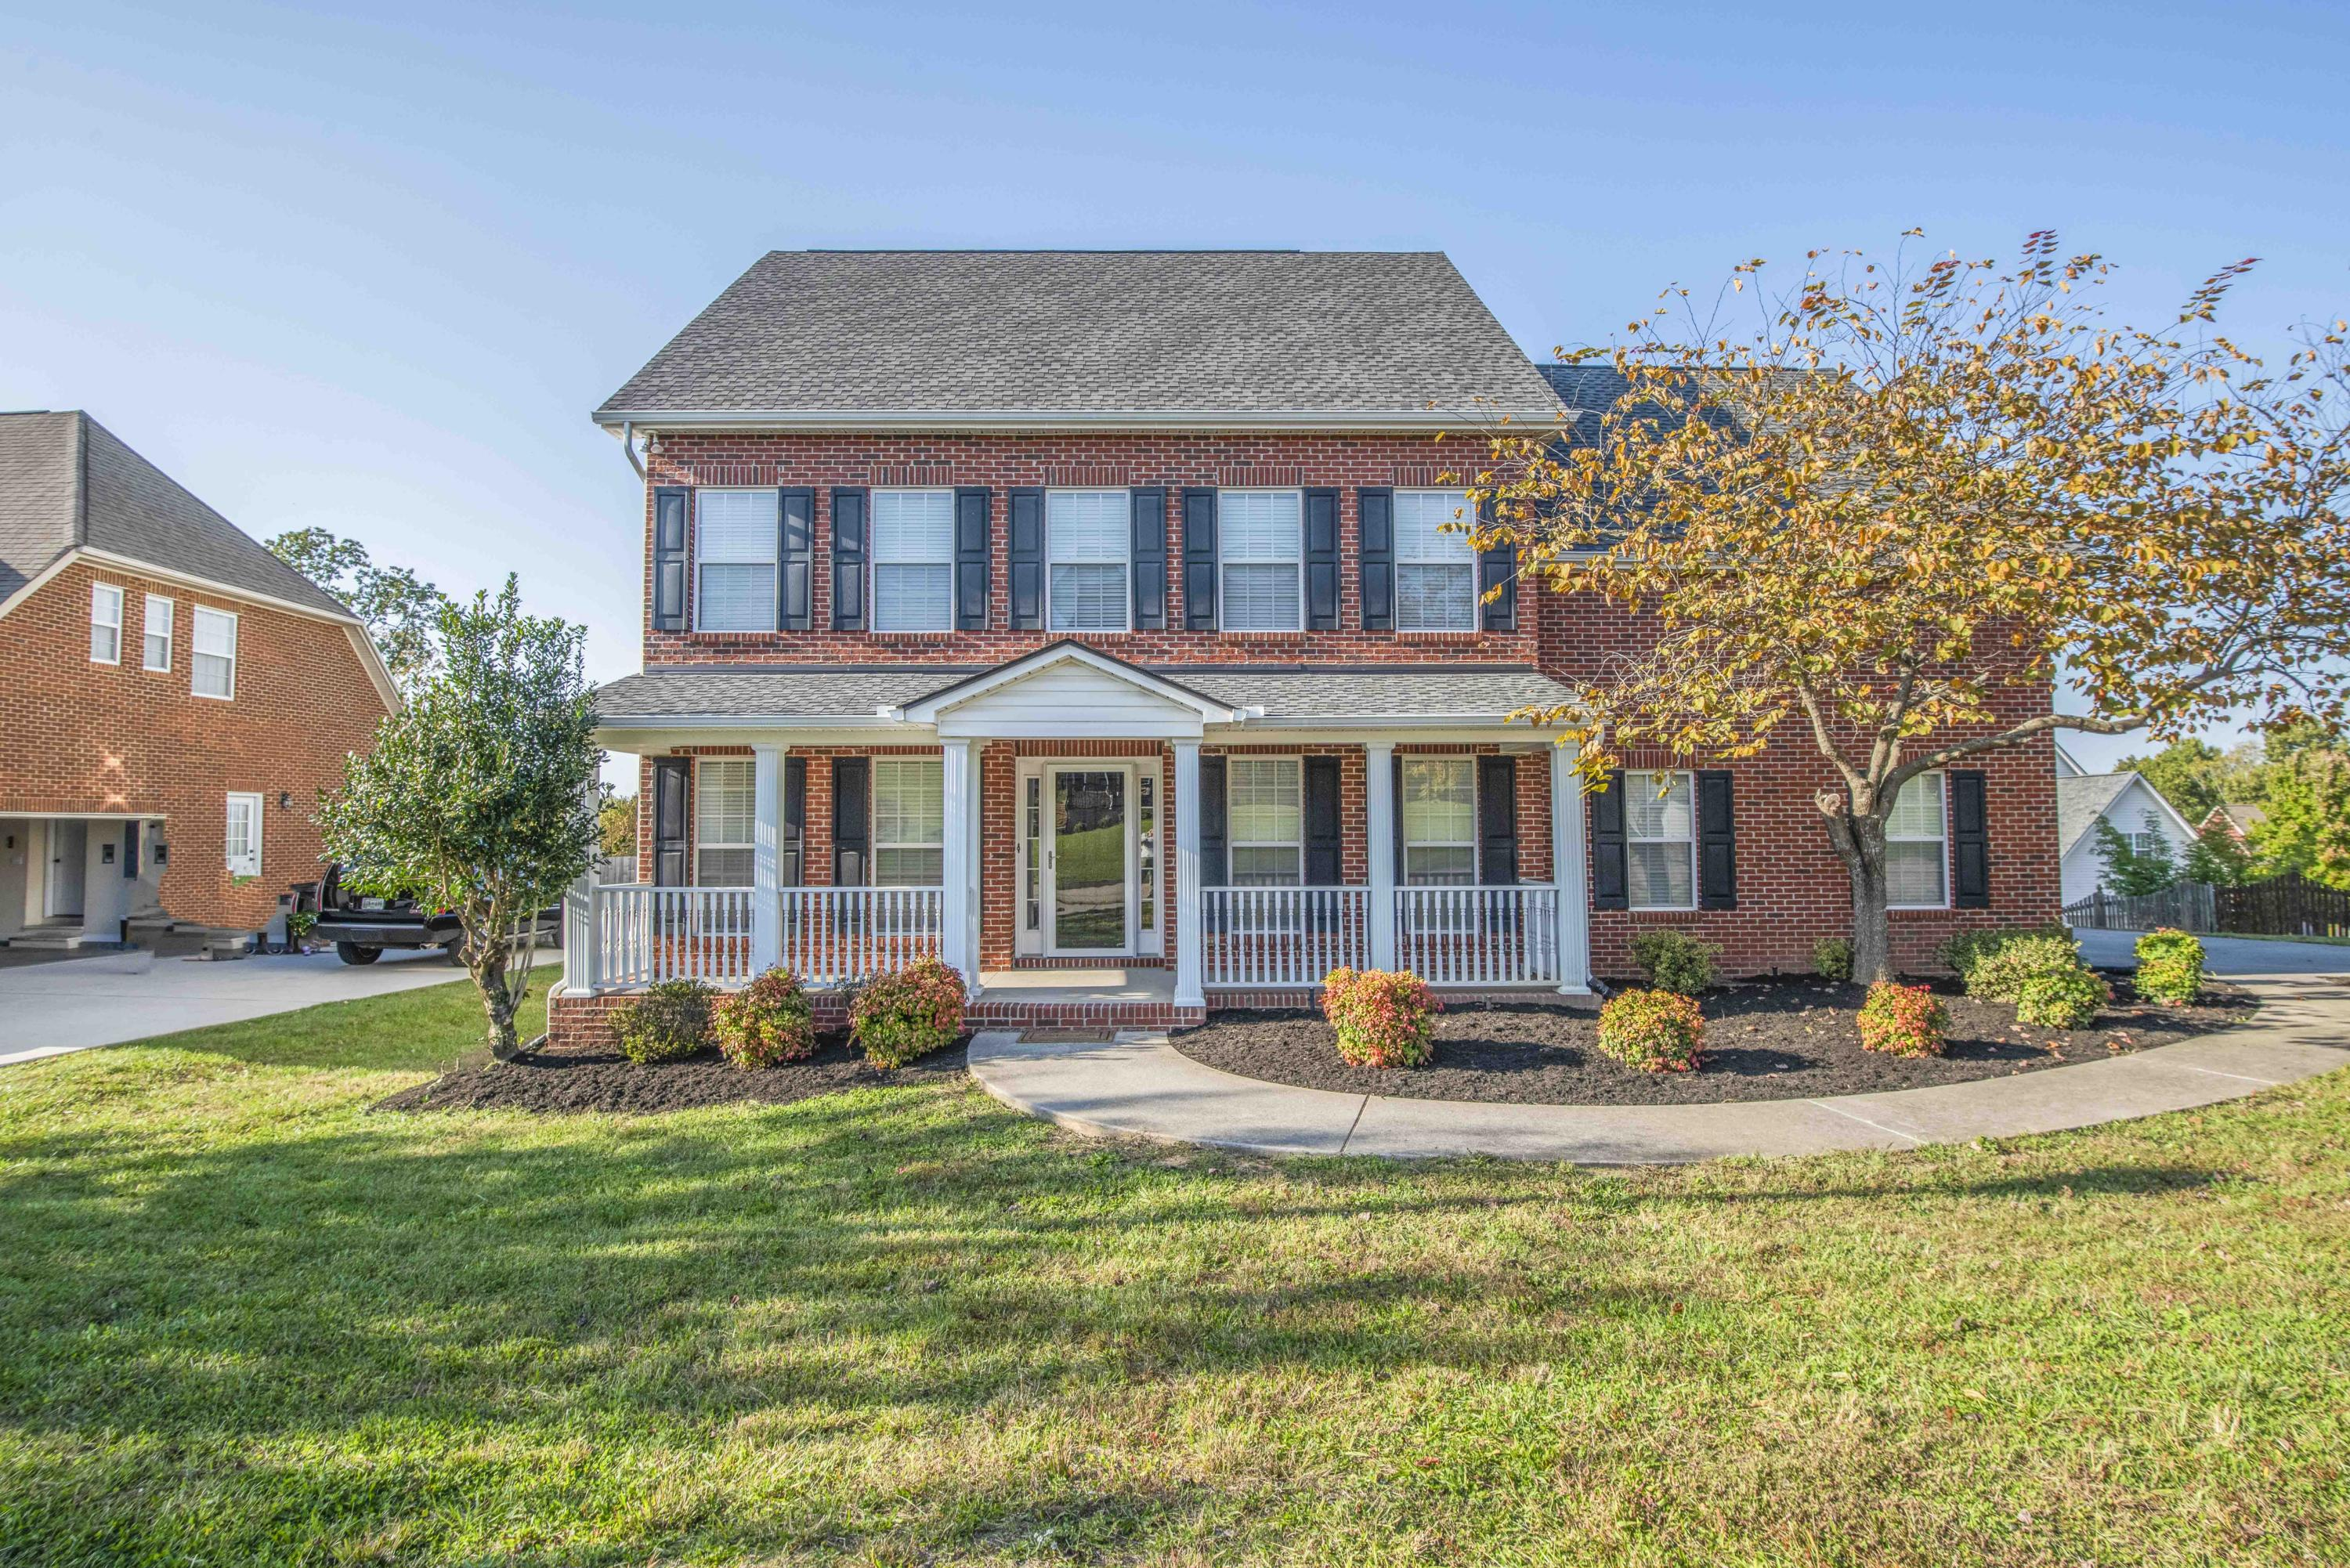 9107 Candle Pine Drive, Knoxville, Tennessee 37931, 4 Bedrooms Bedrooms, ,3 BathroomsBathrooms,Single Family,For Sale,Candle Pine,1130483